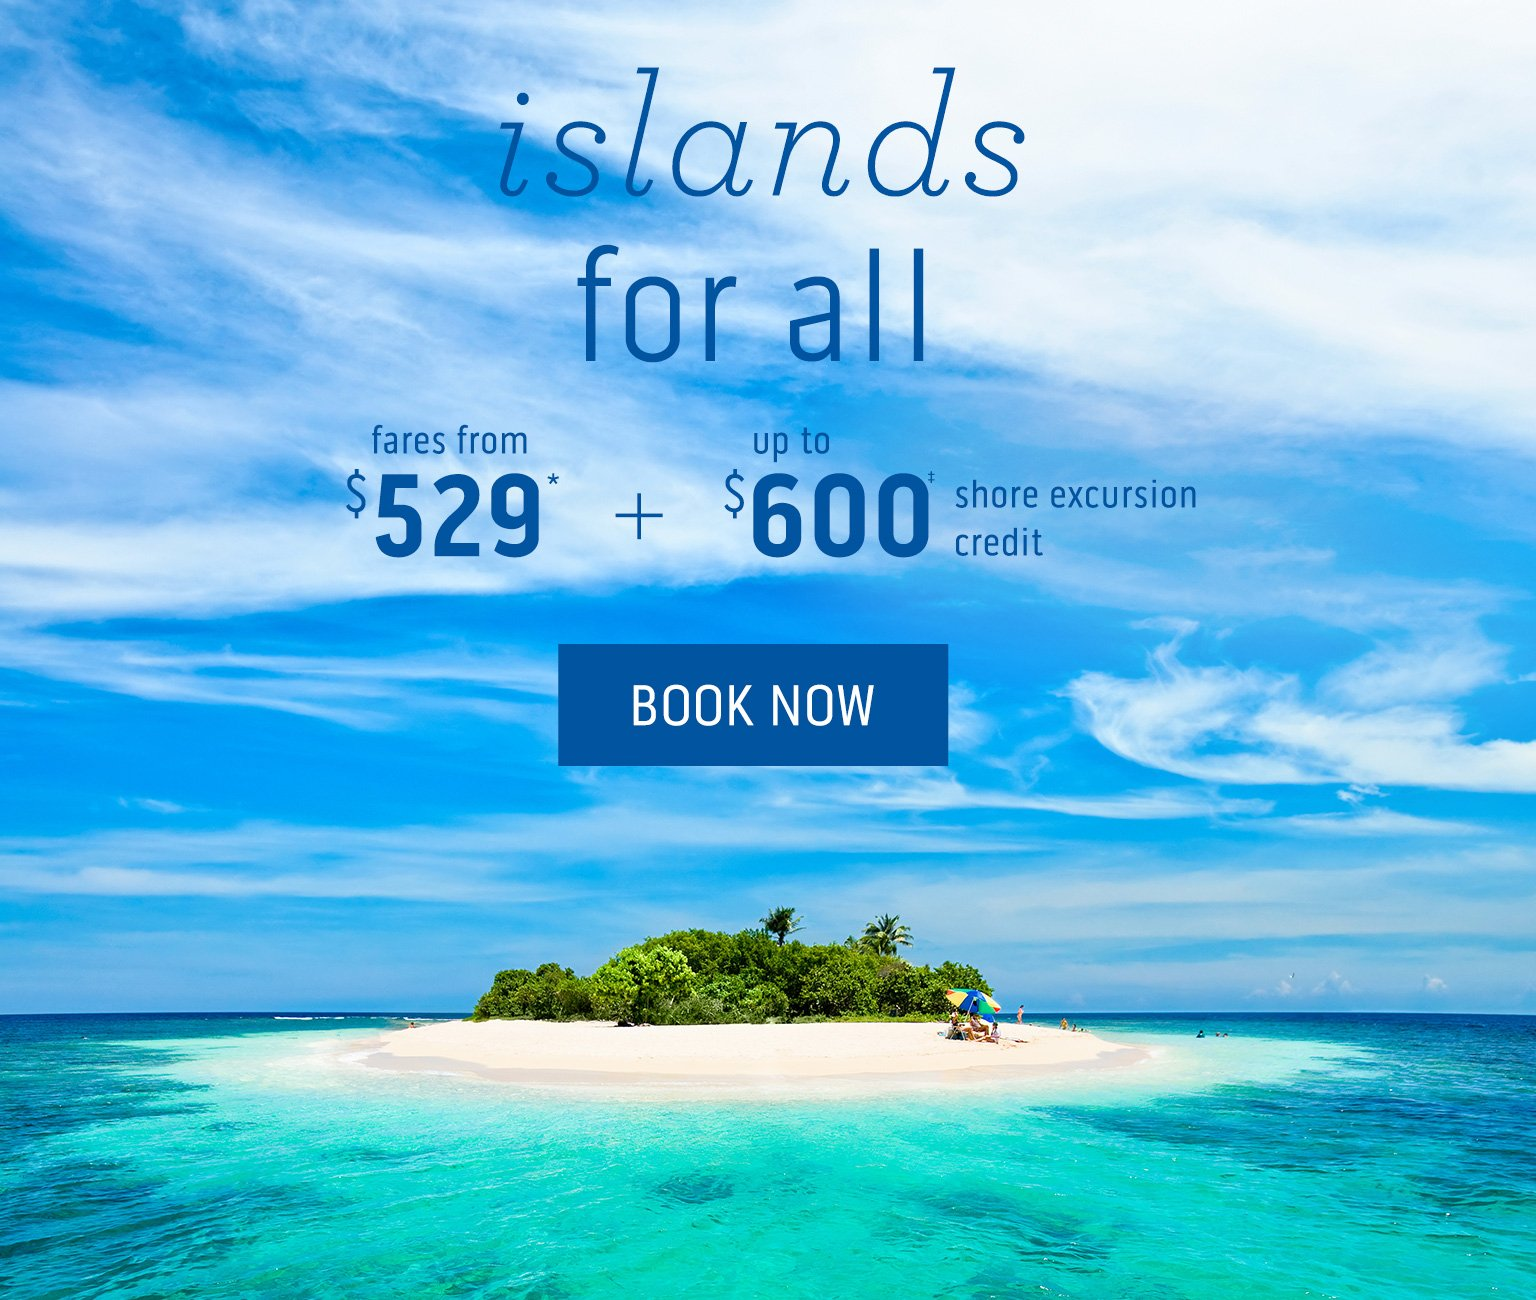 islands for all - fares from $529 + up to $600 shore excursion credit. Click here to book now